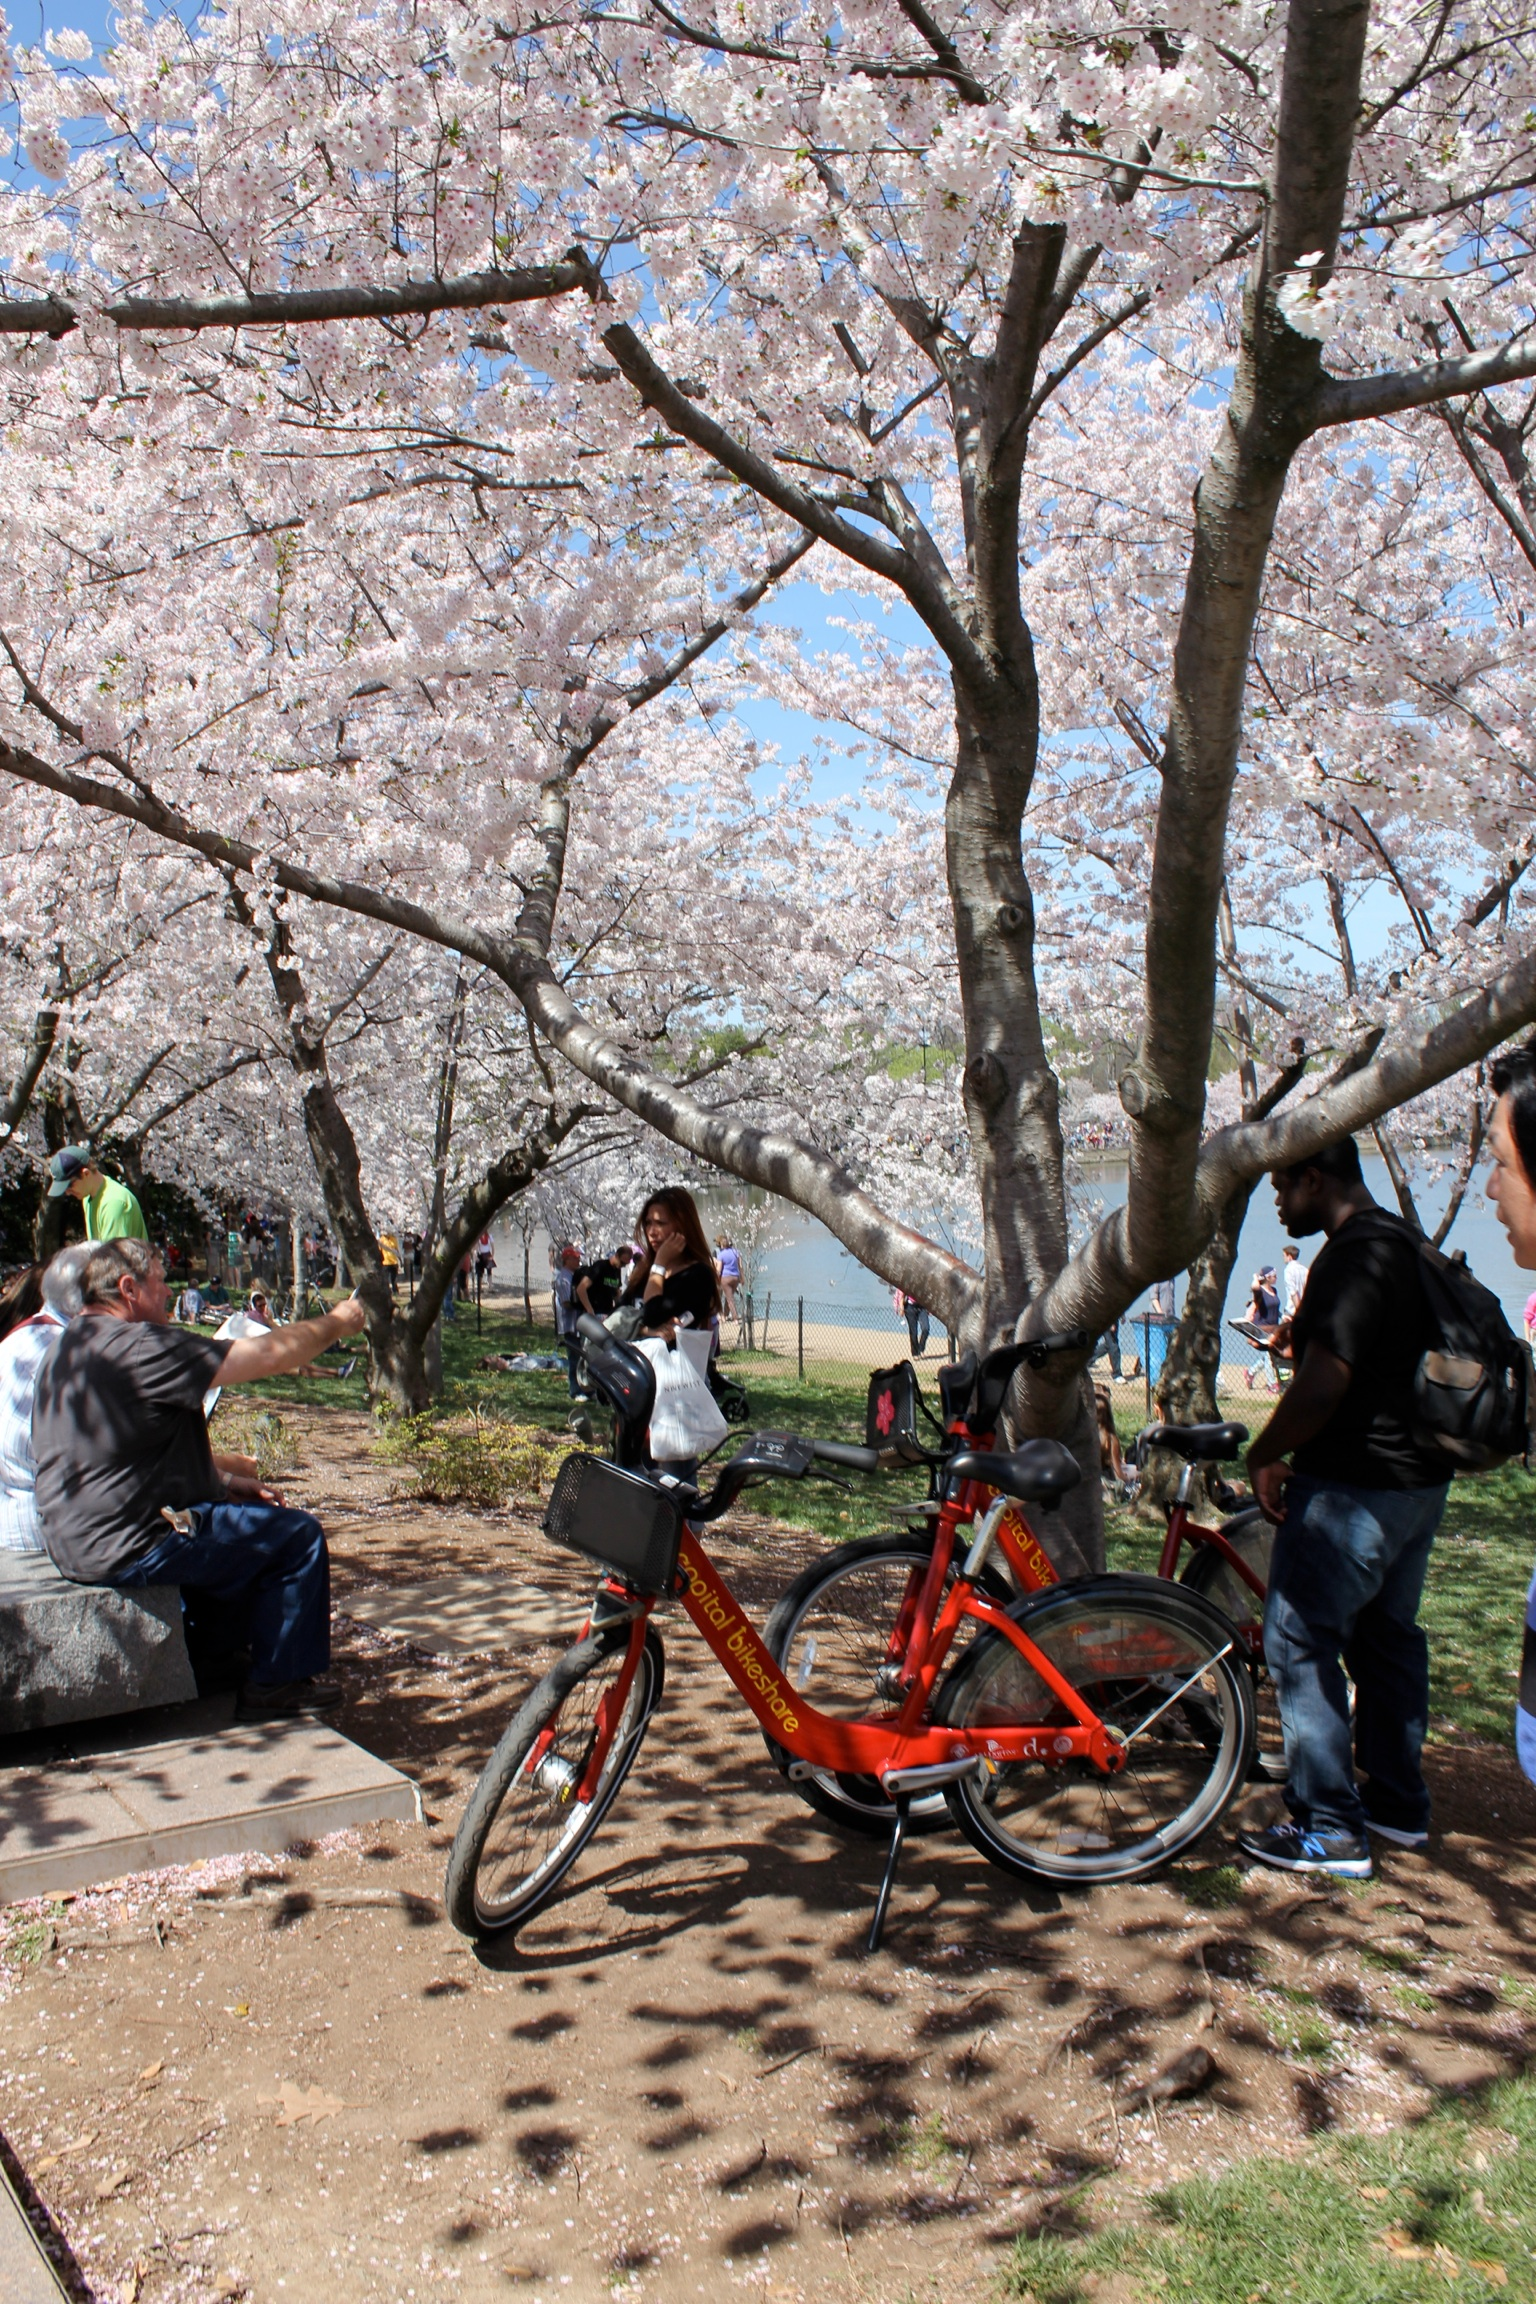 National Cherry Blossom Festival 2014